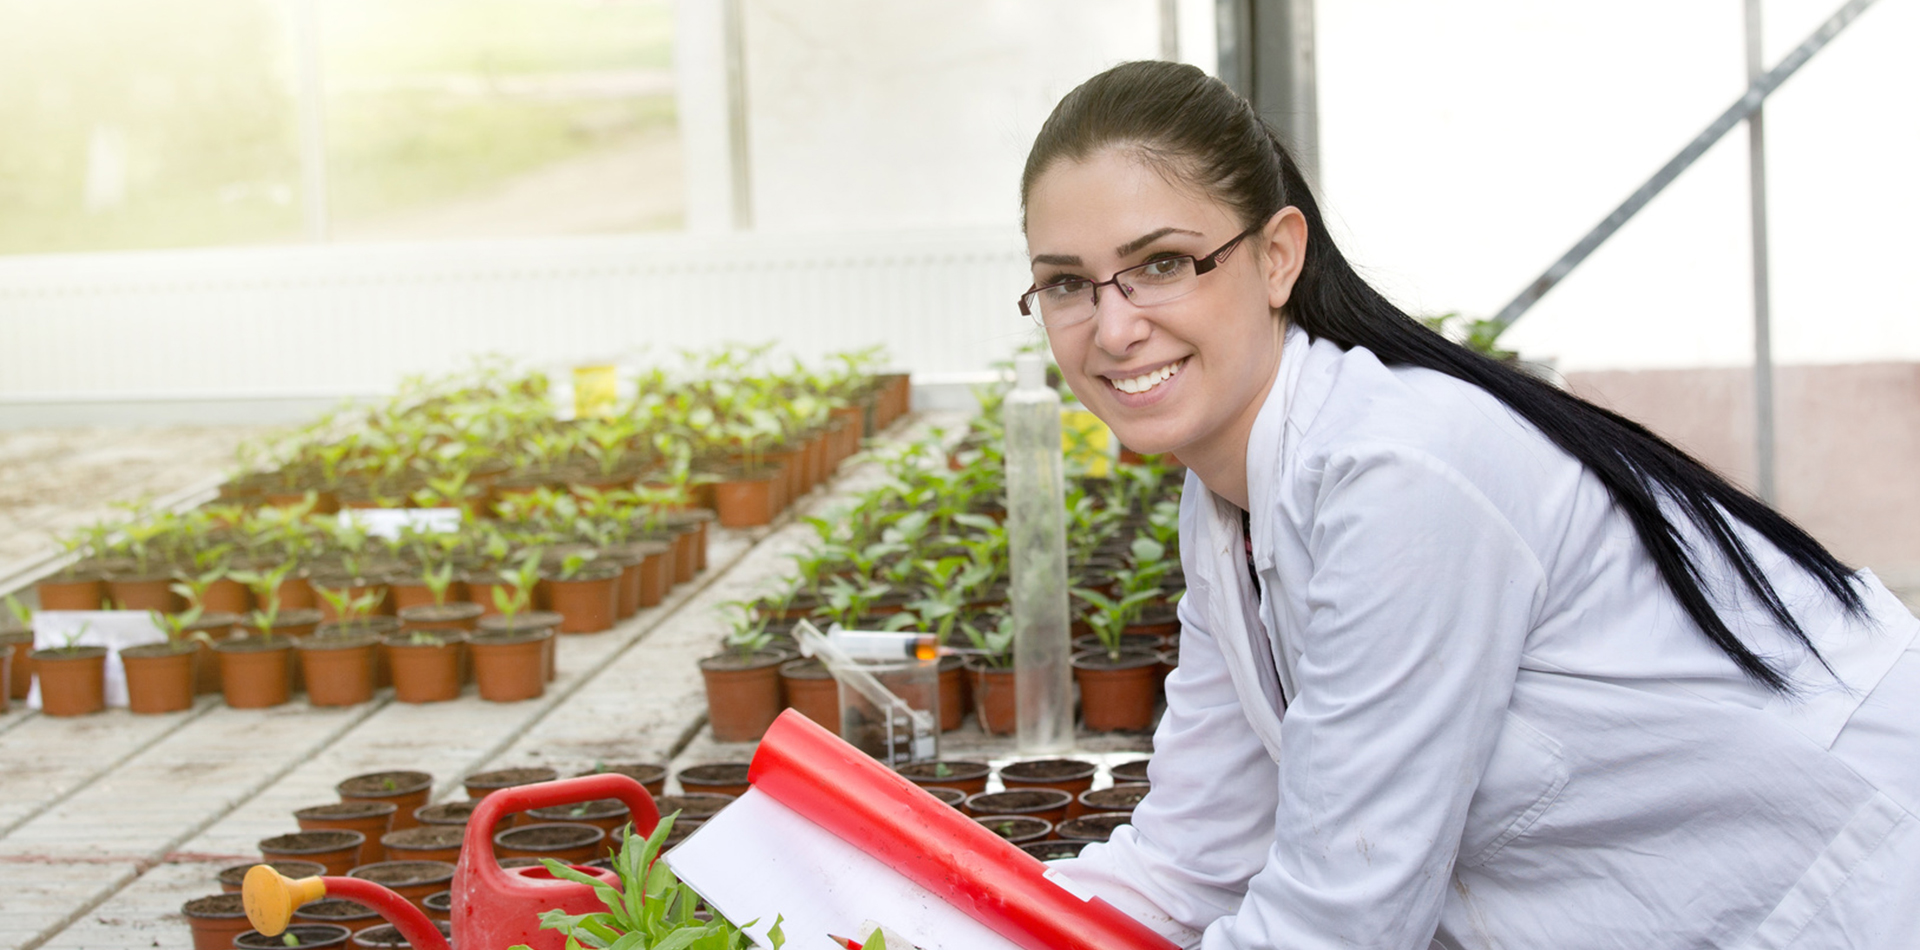 Erasmus Mundus Master Program in Plant Breeding - emPLANT